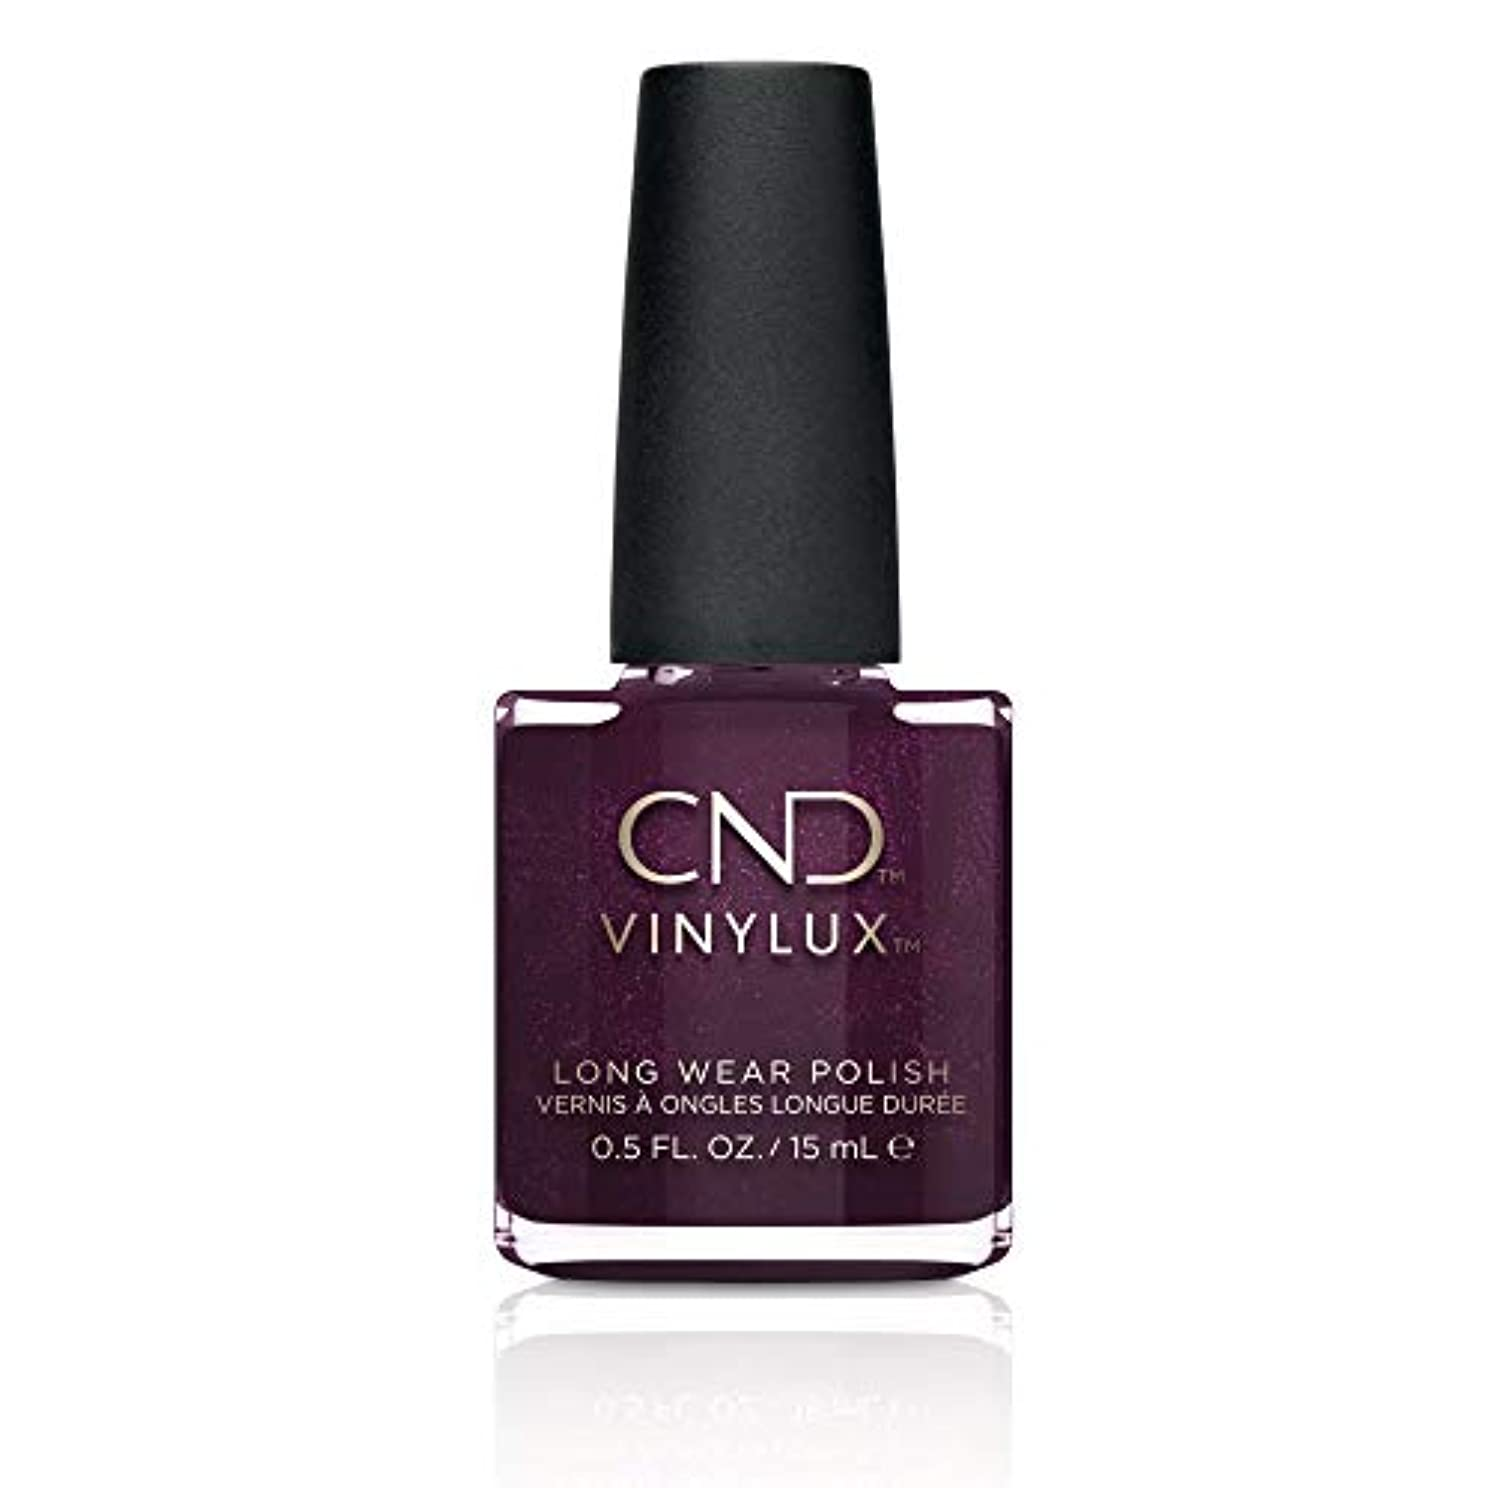 CND Vinylux Long Wear Nail Polish (No Lamp Required), 15 ml, Purple, Plum Paisley